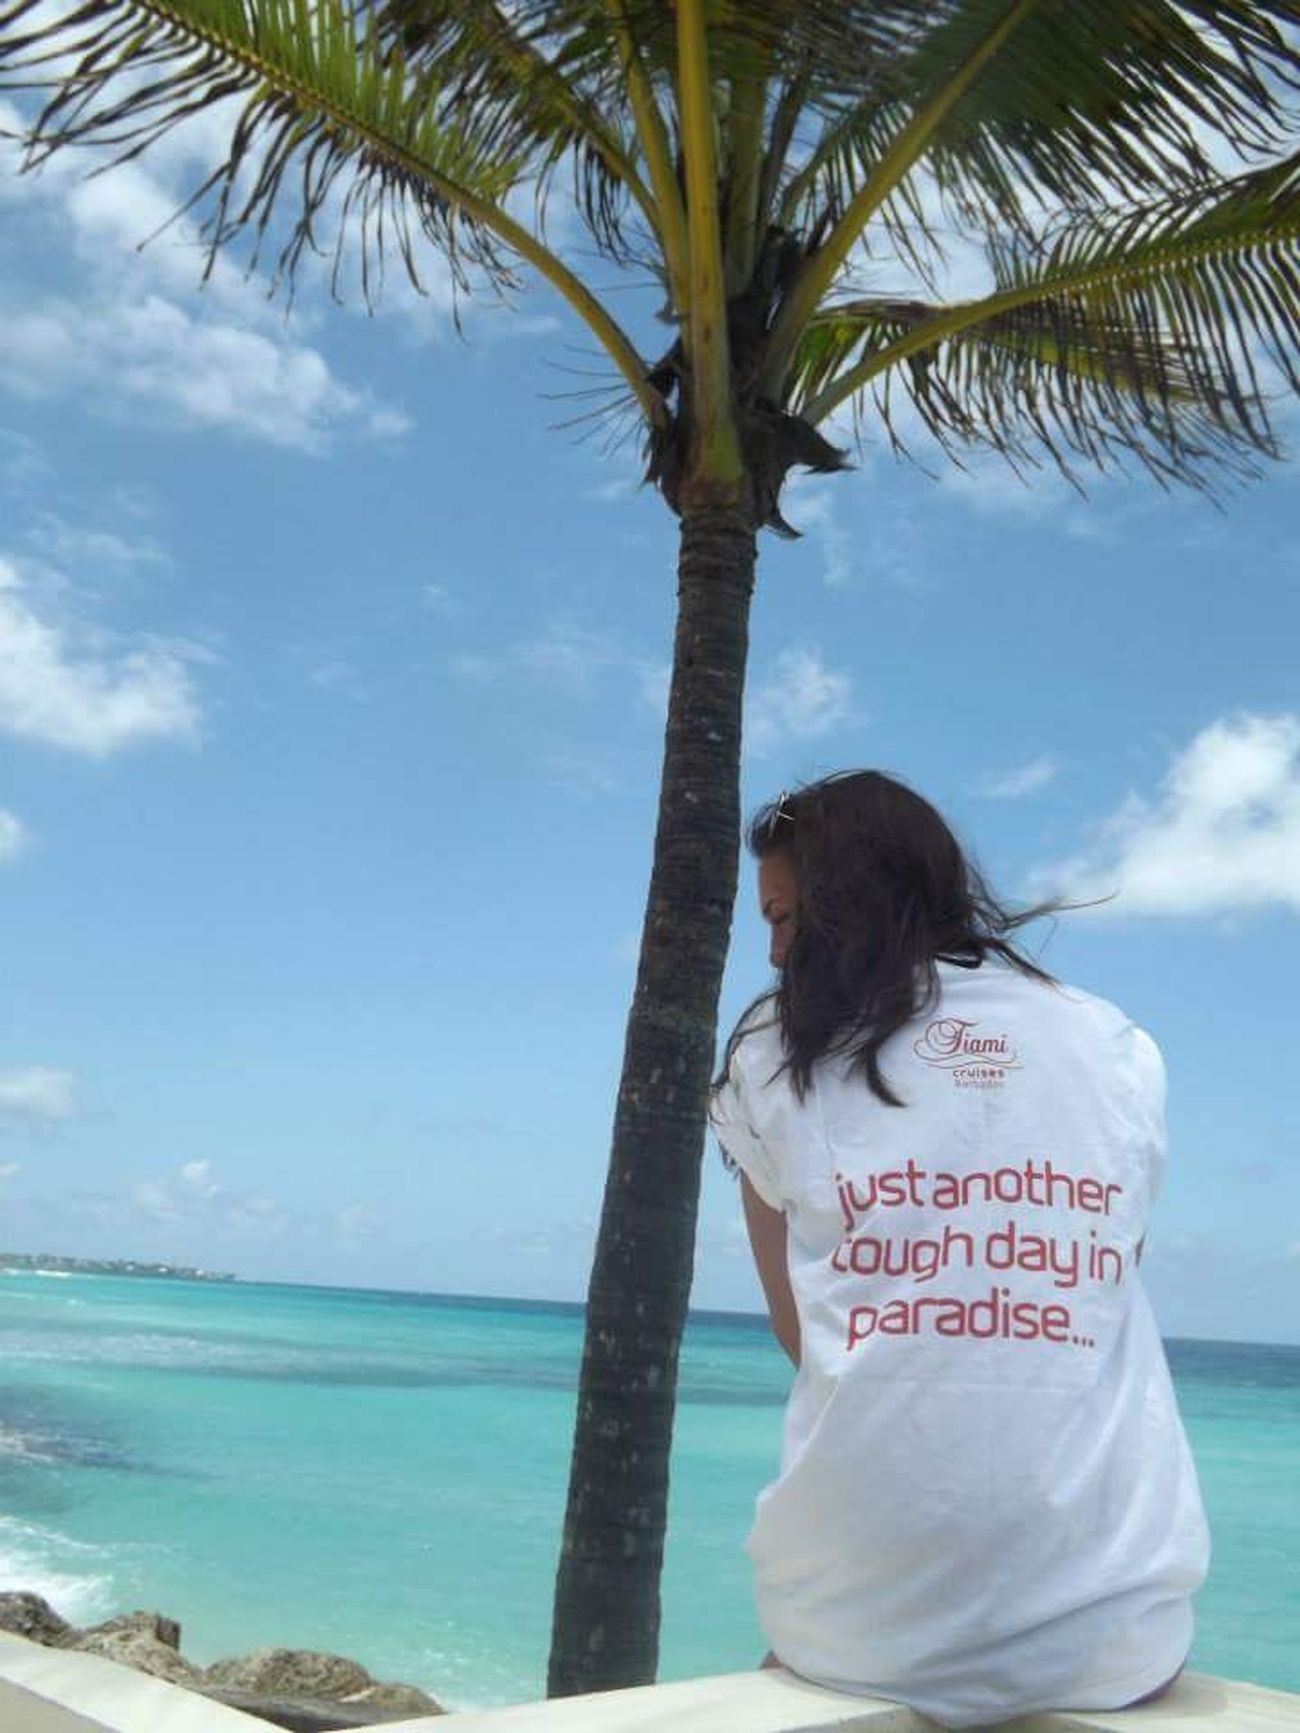 RePicture Travel Just another tough day in paradise☀️ Barbados Virgin Holidays Virgin Atlantic Traveling Holiday Palm Trees Sea Hello World Enjoying Life